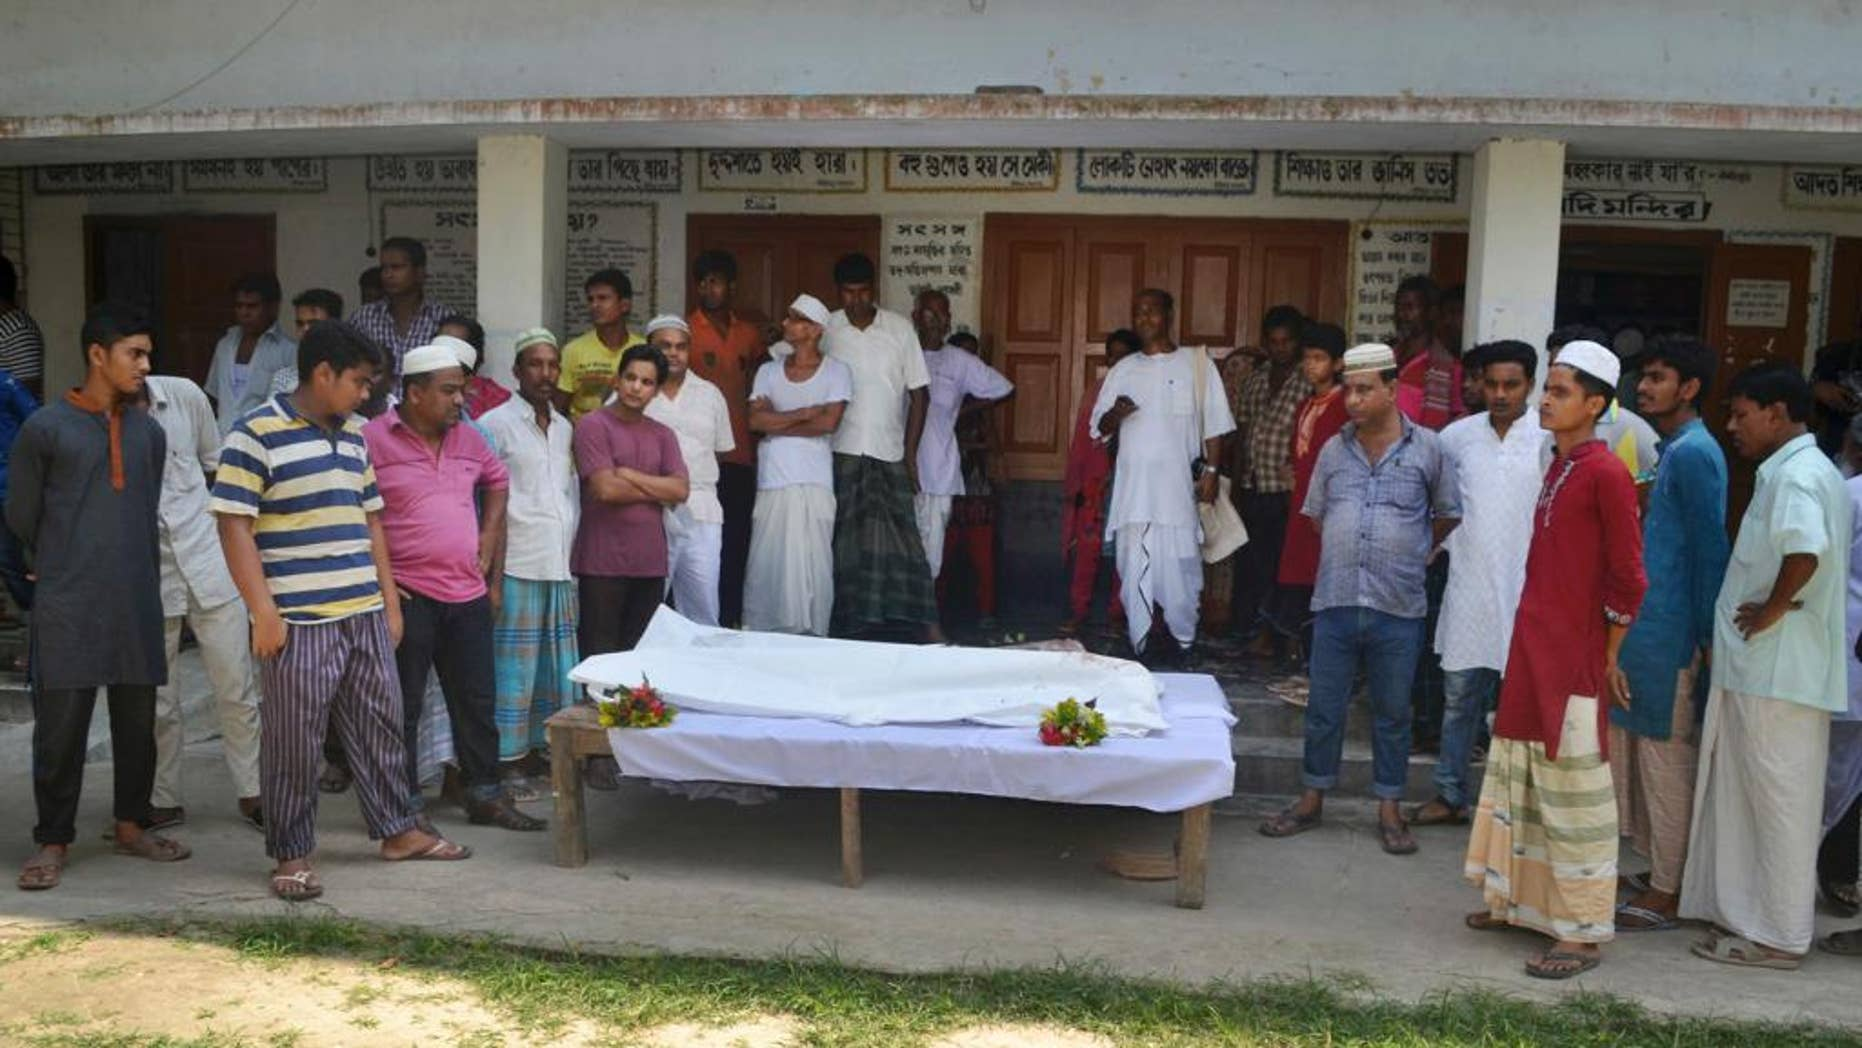 Locals surround the body of a Hindu holy man after assailants hacked him to death in Pabna, 275 kilometres (170 miles) from Dhaka, Friday, June 10, 2016. Pabna district police chief Alamgir Kabir said that radical Islamists are suspected of carrying out the attack on 60-year-old Nitya Ranjan Pandey while he was taking a walk at dawn near his ashram. (AP Photo)